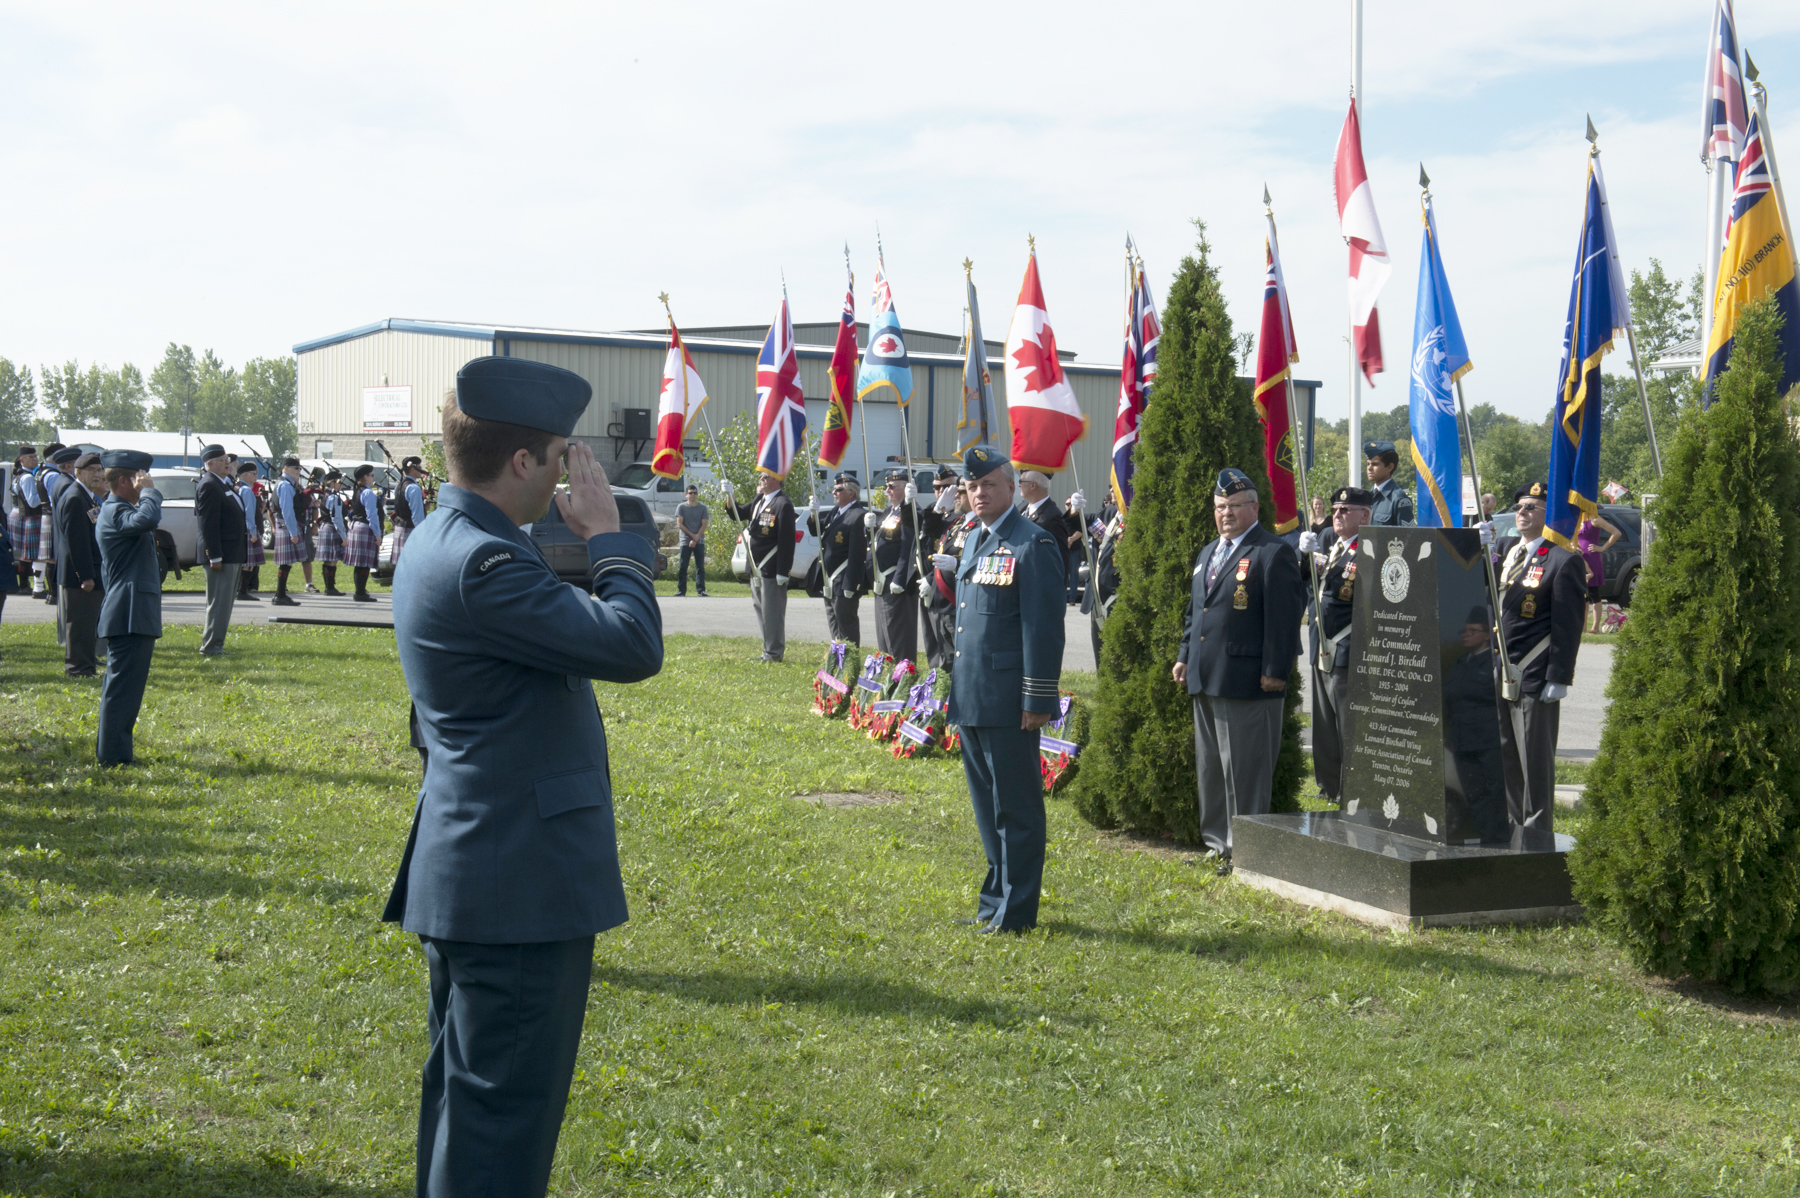 Battle of Britain parade members salute 8 Wing commander and reviewing officer Colonel Colin Keiver during the Battle of Britain parade held at the 413 (Air Commodore Leonard Birchall) Wing Air Force Association of Canada in Trenton, Ontario, on September 18, 2016. PHOTO: Corporal Owen W. Budge, TN10-2016-0688-007